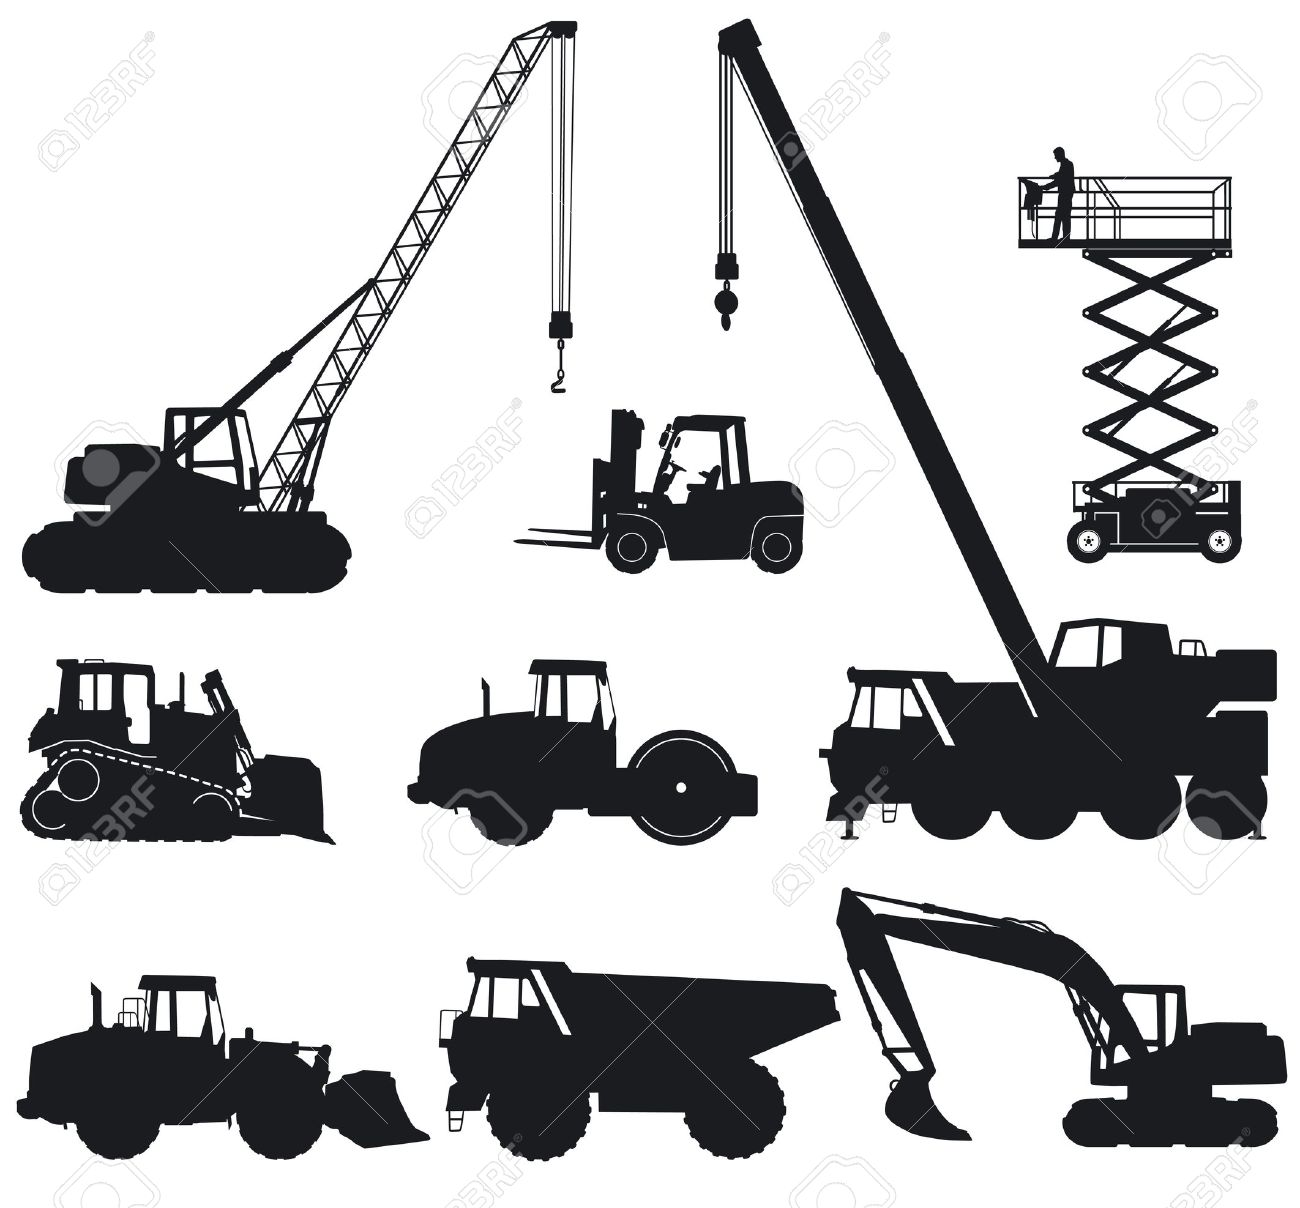 Construction machinery Stock Vector - 14970189